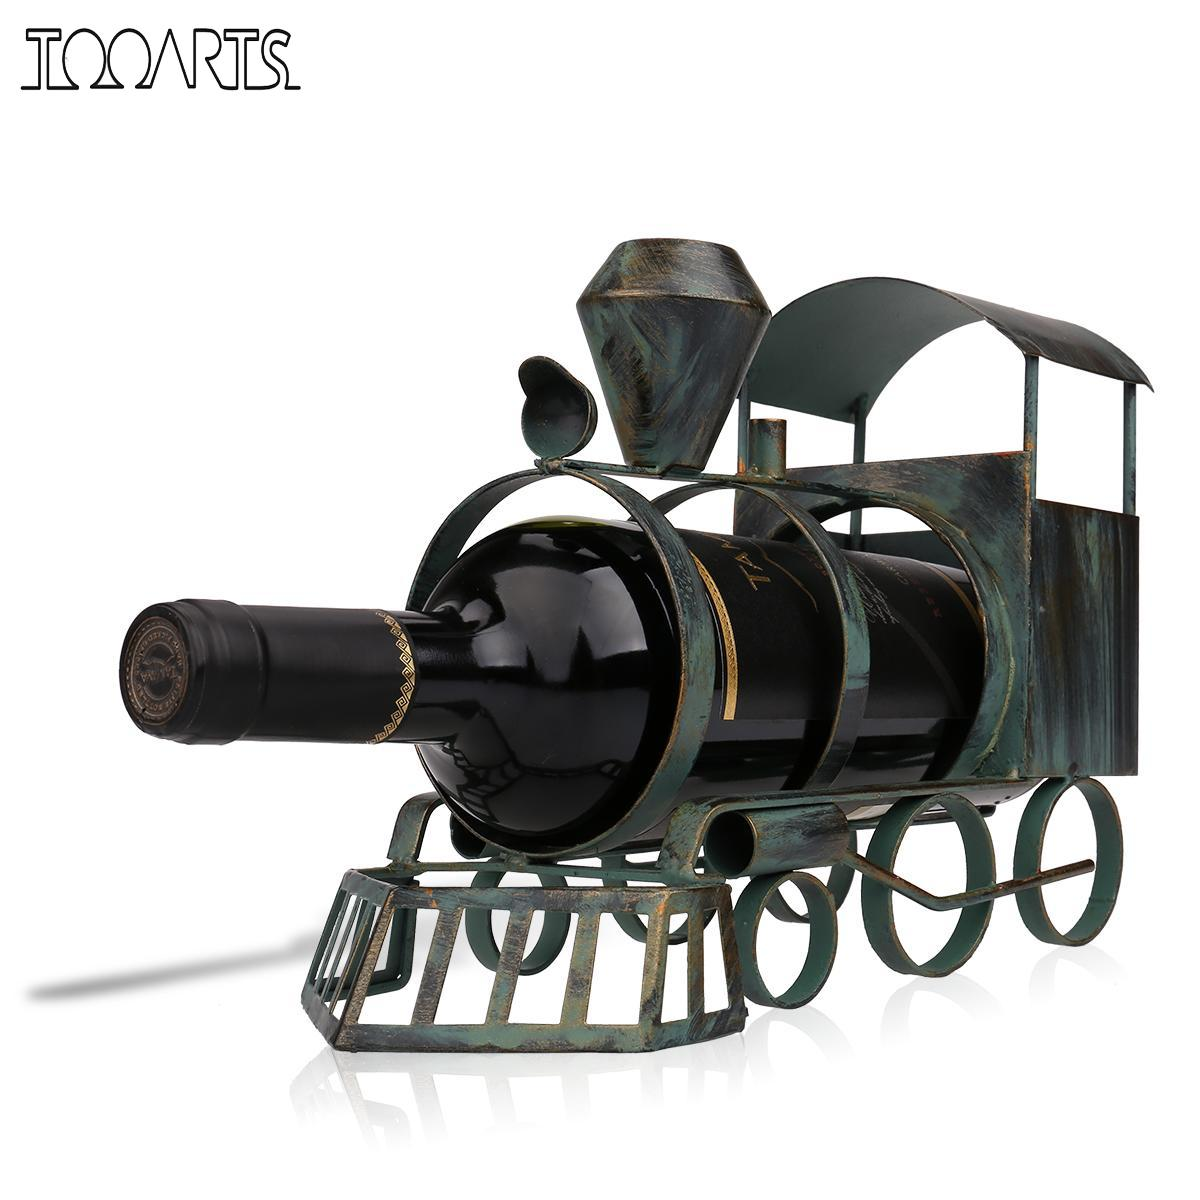 Metal Wine Racks Us 23 42 45 Off Tooarts Train Wine Bottle Holder Iron Art Creative Metal Wine Rack Classic Craft Bottle Stand Figurines Decoration Artwork Gift In